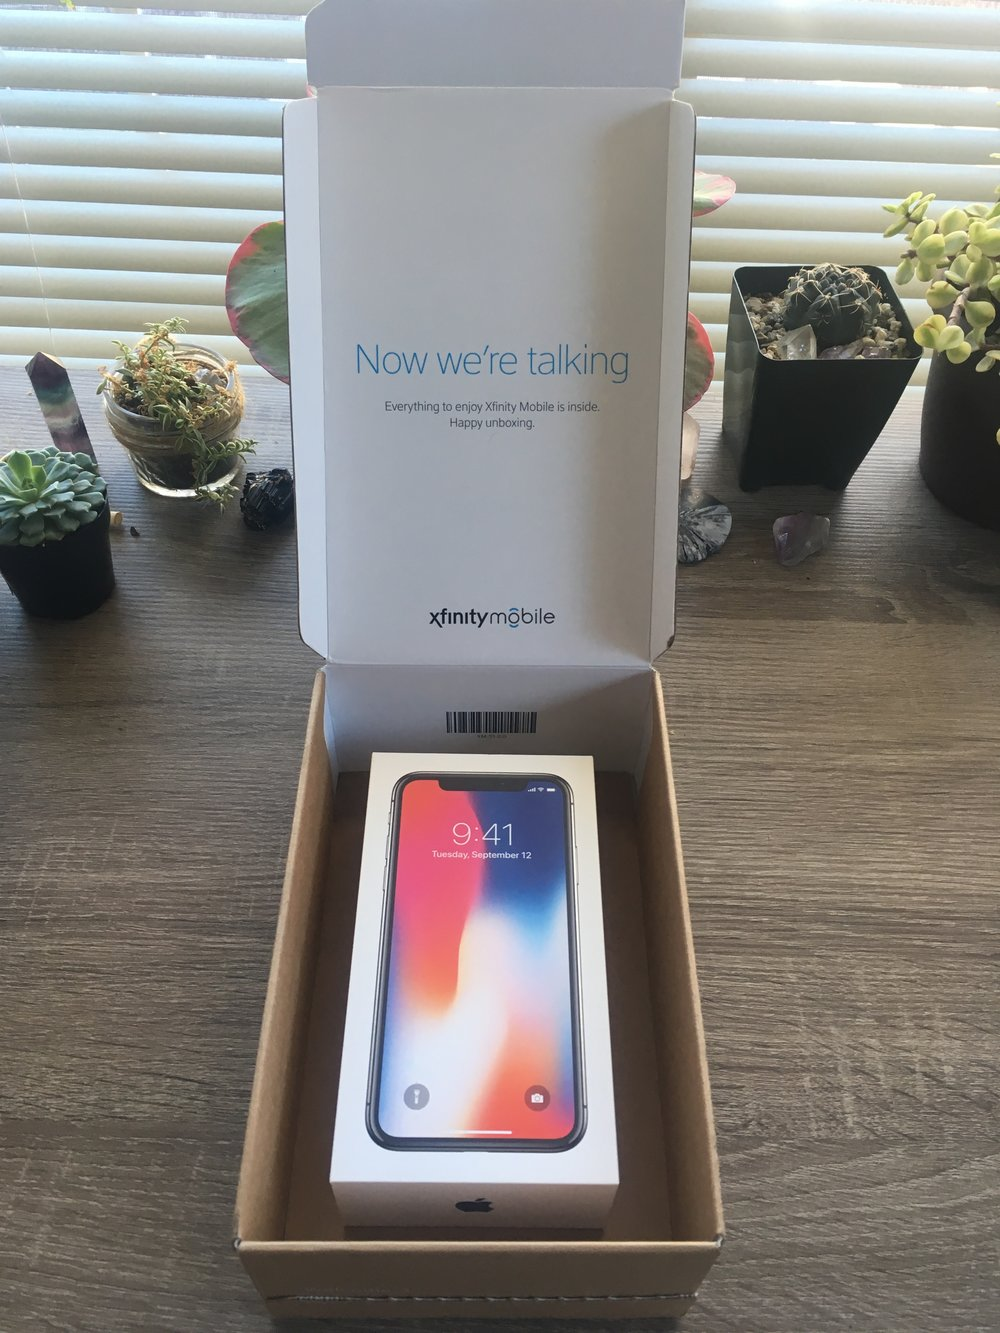 Packaging of the iPhone X by Xfinity mobile. Not shown, instructional card, protective bubble wrap.